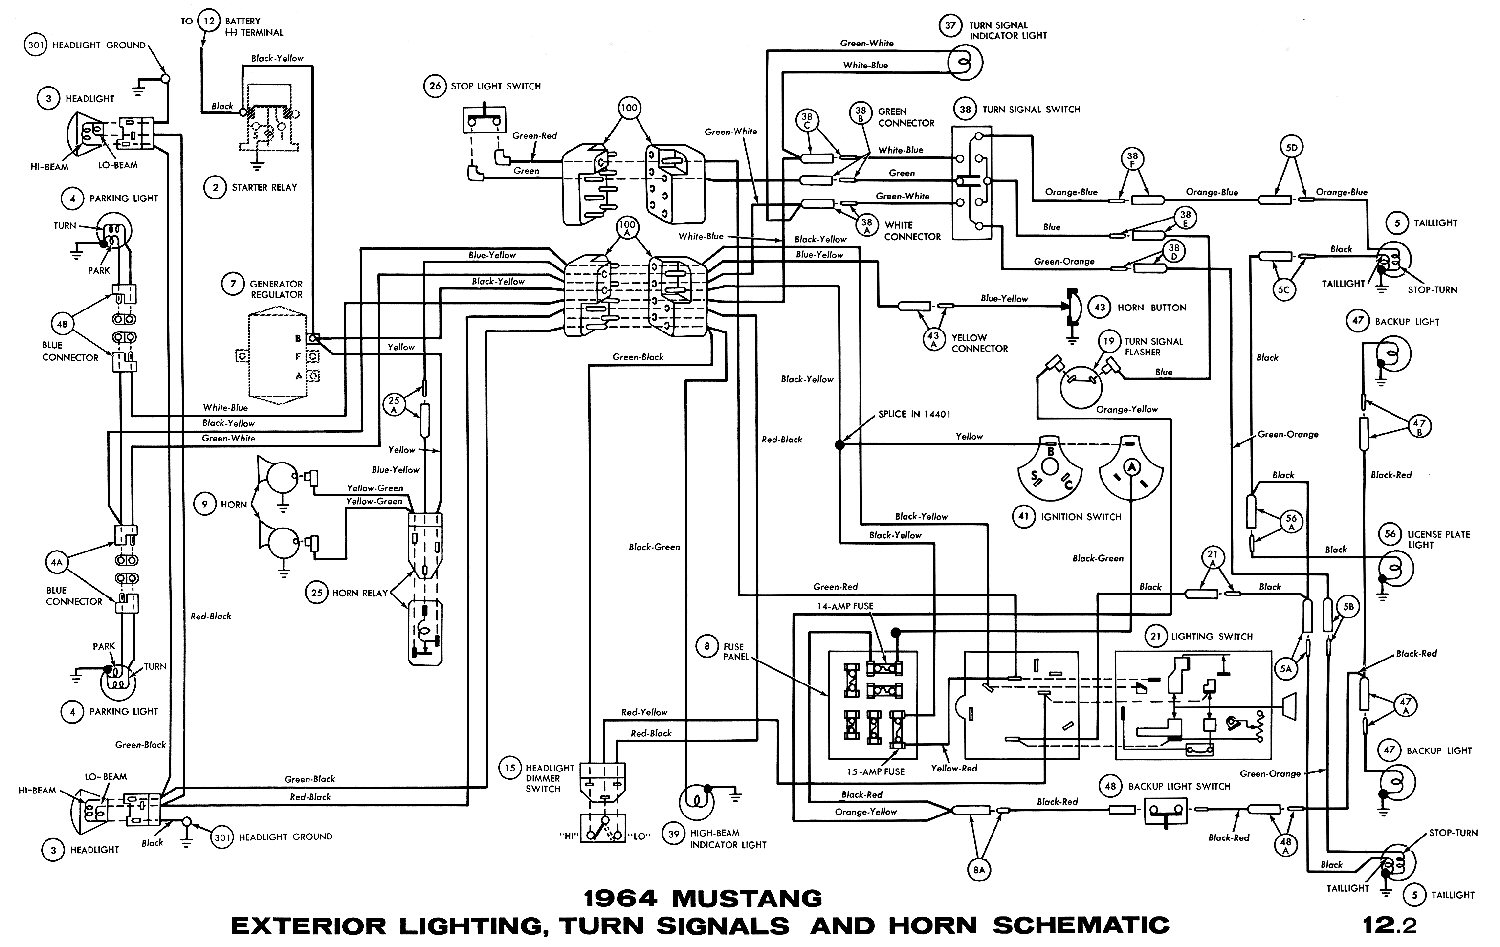 1964i 1964 mustang wiring diagrams average joe restoration 1966 mustang headlight wiring diagram at n-0.co